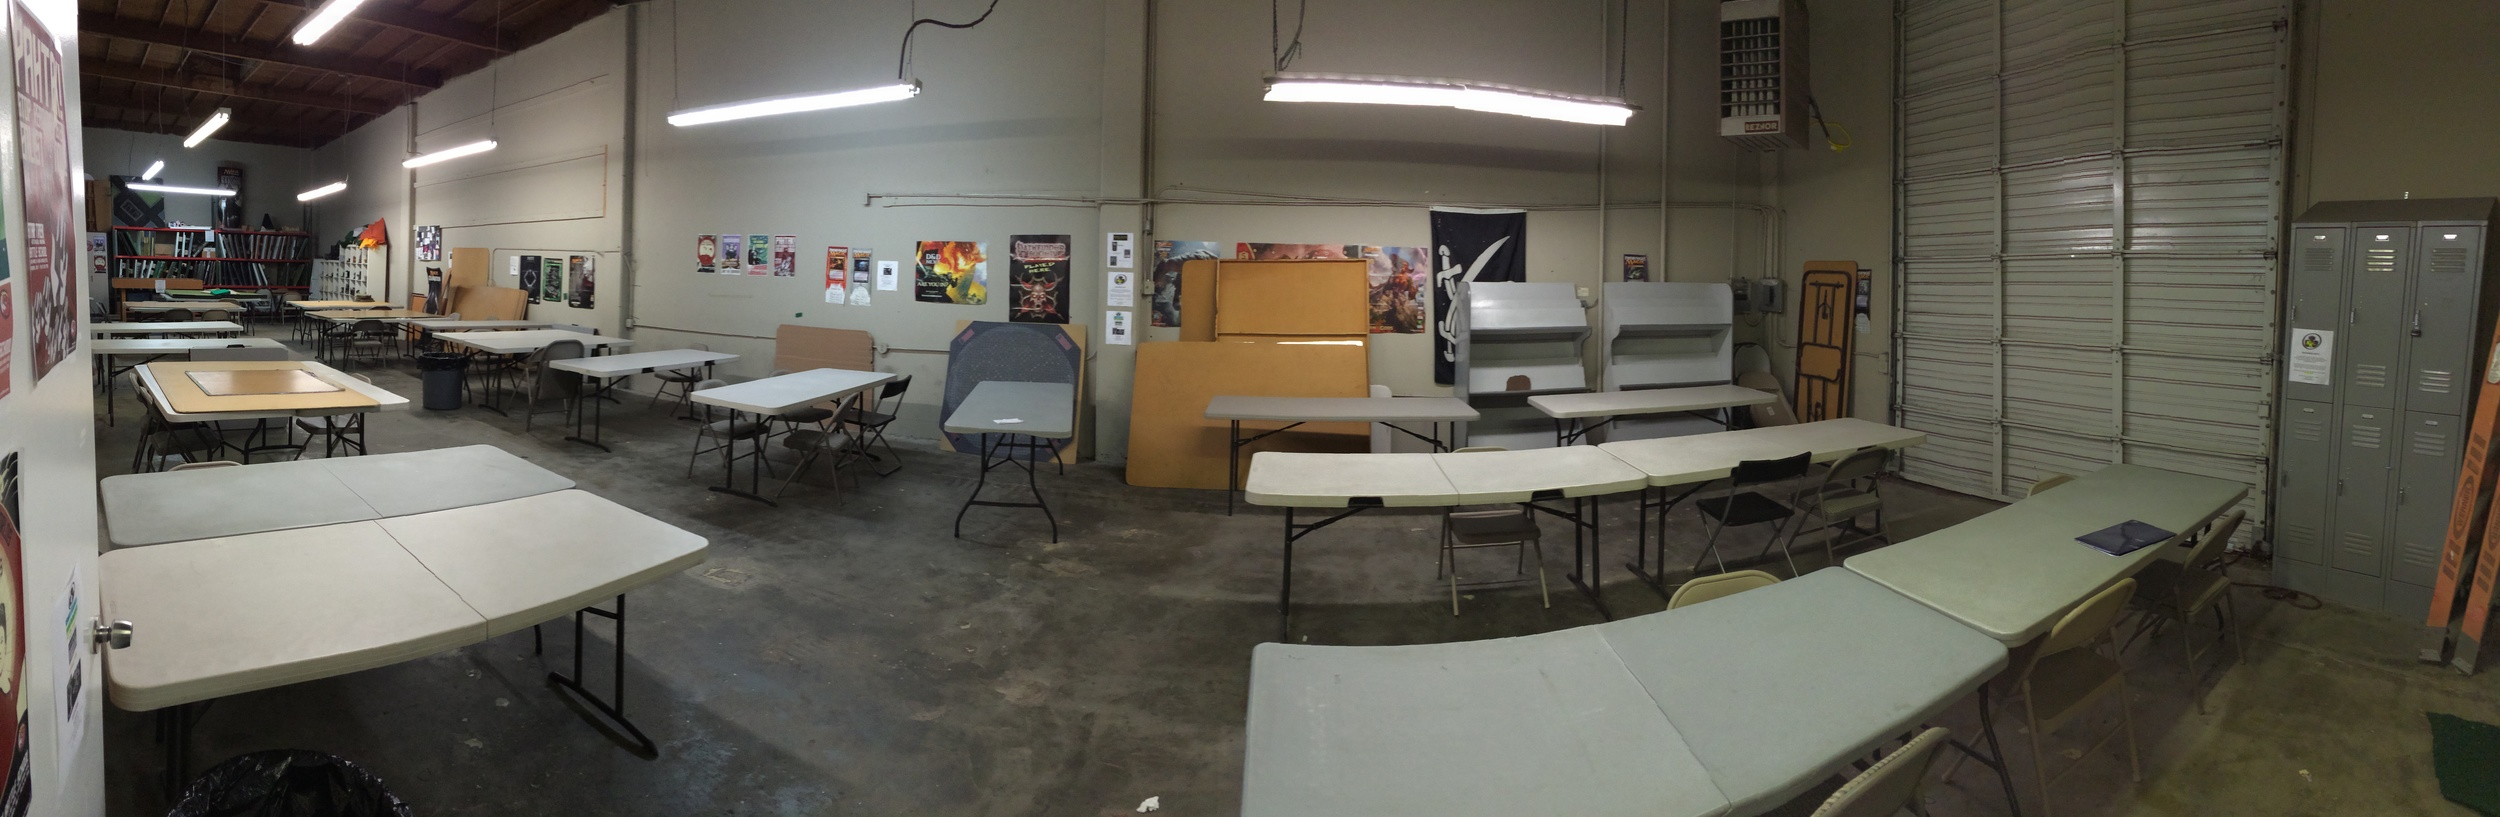 The Dungeon room at Game Kastle can hold 20-25 tables.